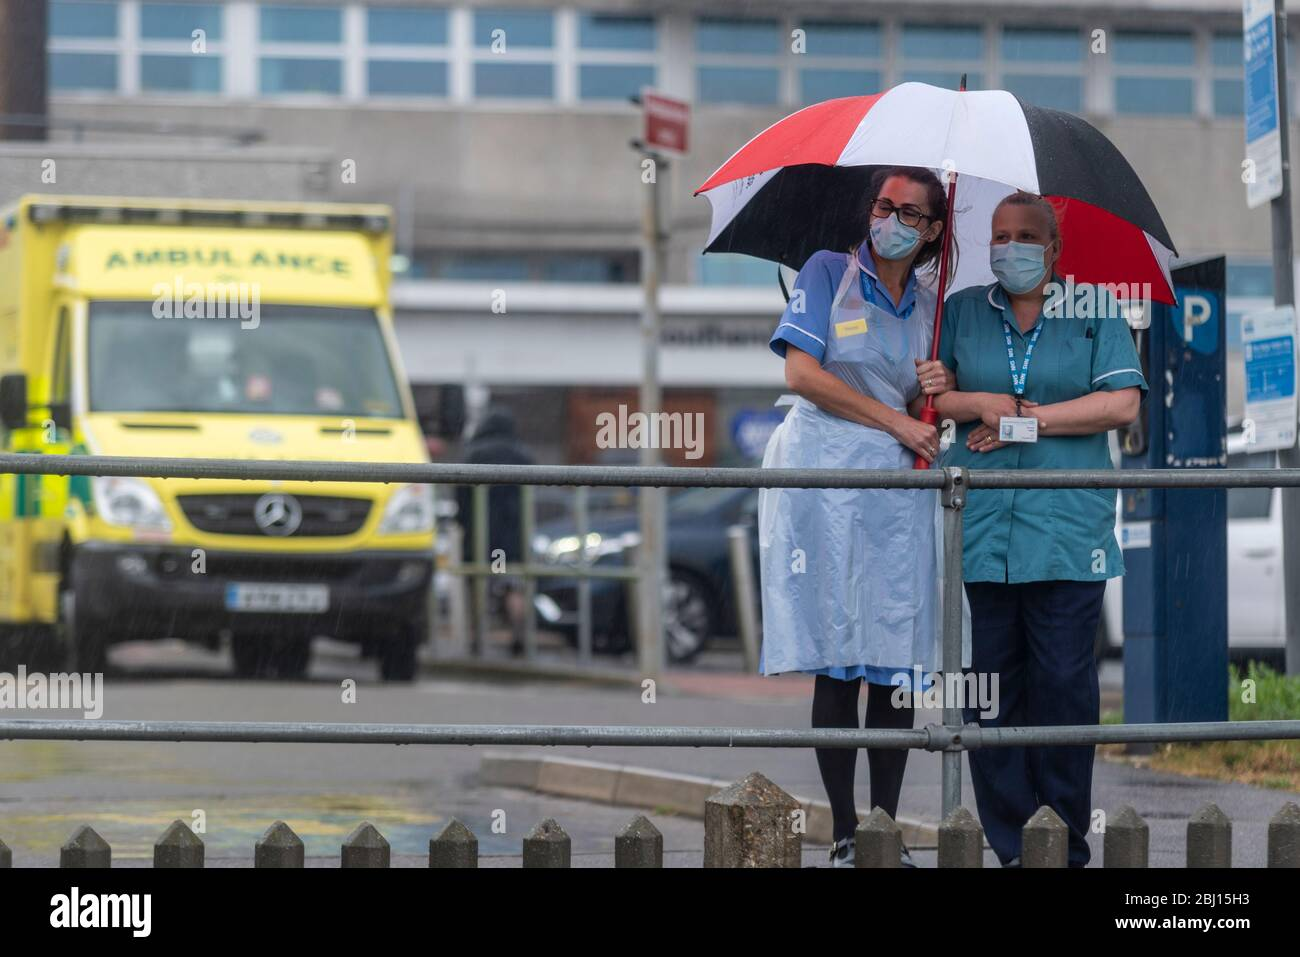 southend-university-hospital-southend-on-sea-essex-uk-28th-apr-2020-on-international-workers-memorial-day-a-one-minutes-silence-took-place-at-11am-to-remember-the-health-and-social-care-and-other-key-workers-that-have-died-as-a-result-of-the-covid-19-coronavirus-pandemic-pairs-of-shoes-have-been-placed-on-the-green-outside-southends-hospital-as-a-visual-reminder-of-the-more-than-one-hundred-frontline-staff-who-have-lost-their-lives-including-a-number-from-southend-2BJ15H3.jpg